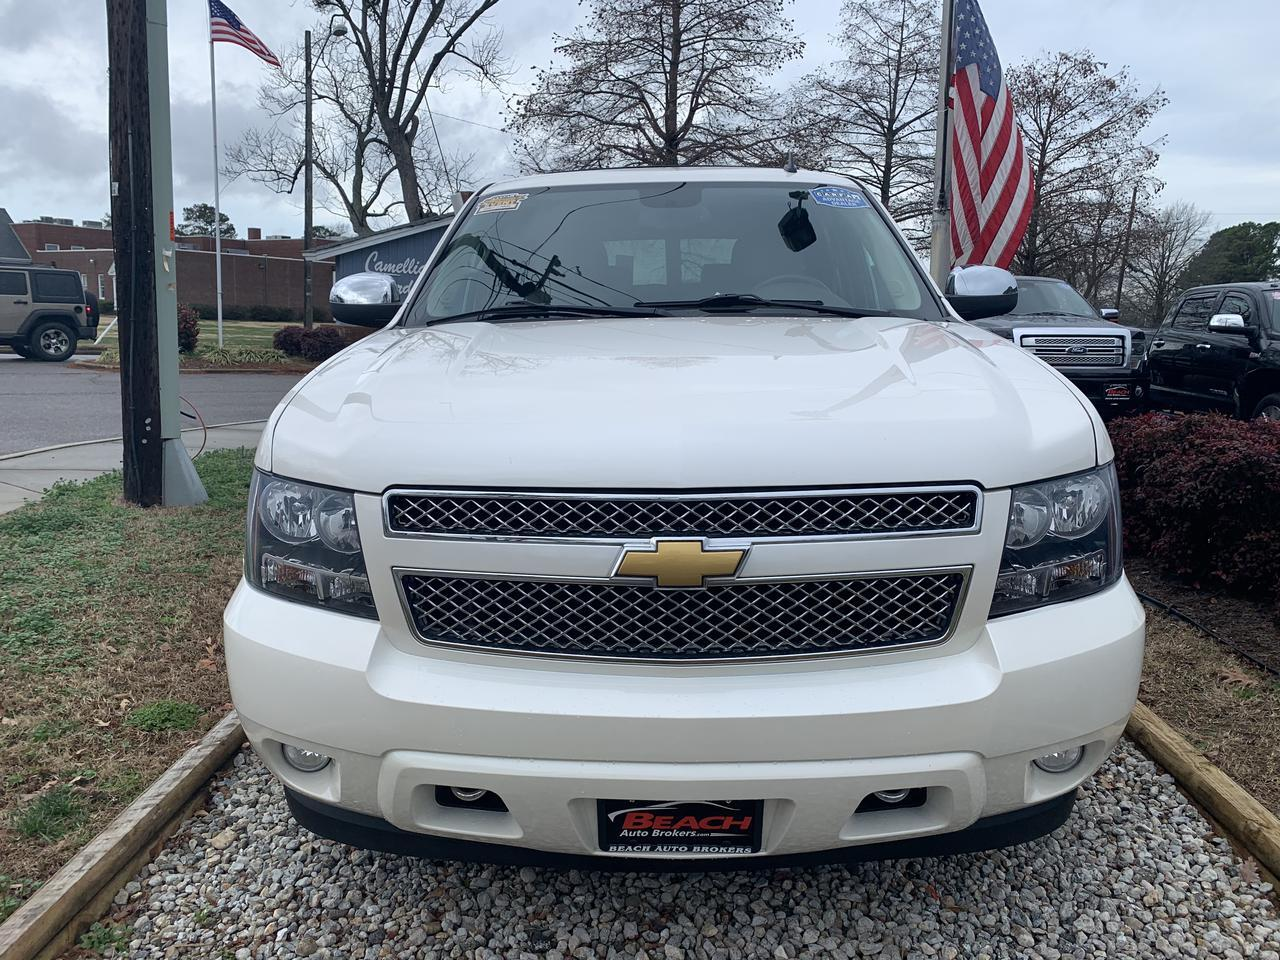 2014 CHEVROLET TAHOE LTZ 4X4, WARRANTY, LEATHER, NAV, SUNROOF, CAPTAINS CHAIRS, FULLY LOADED, 1 OWNER! Norfolk VA